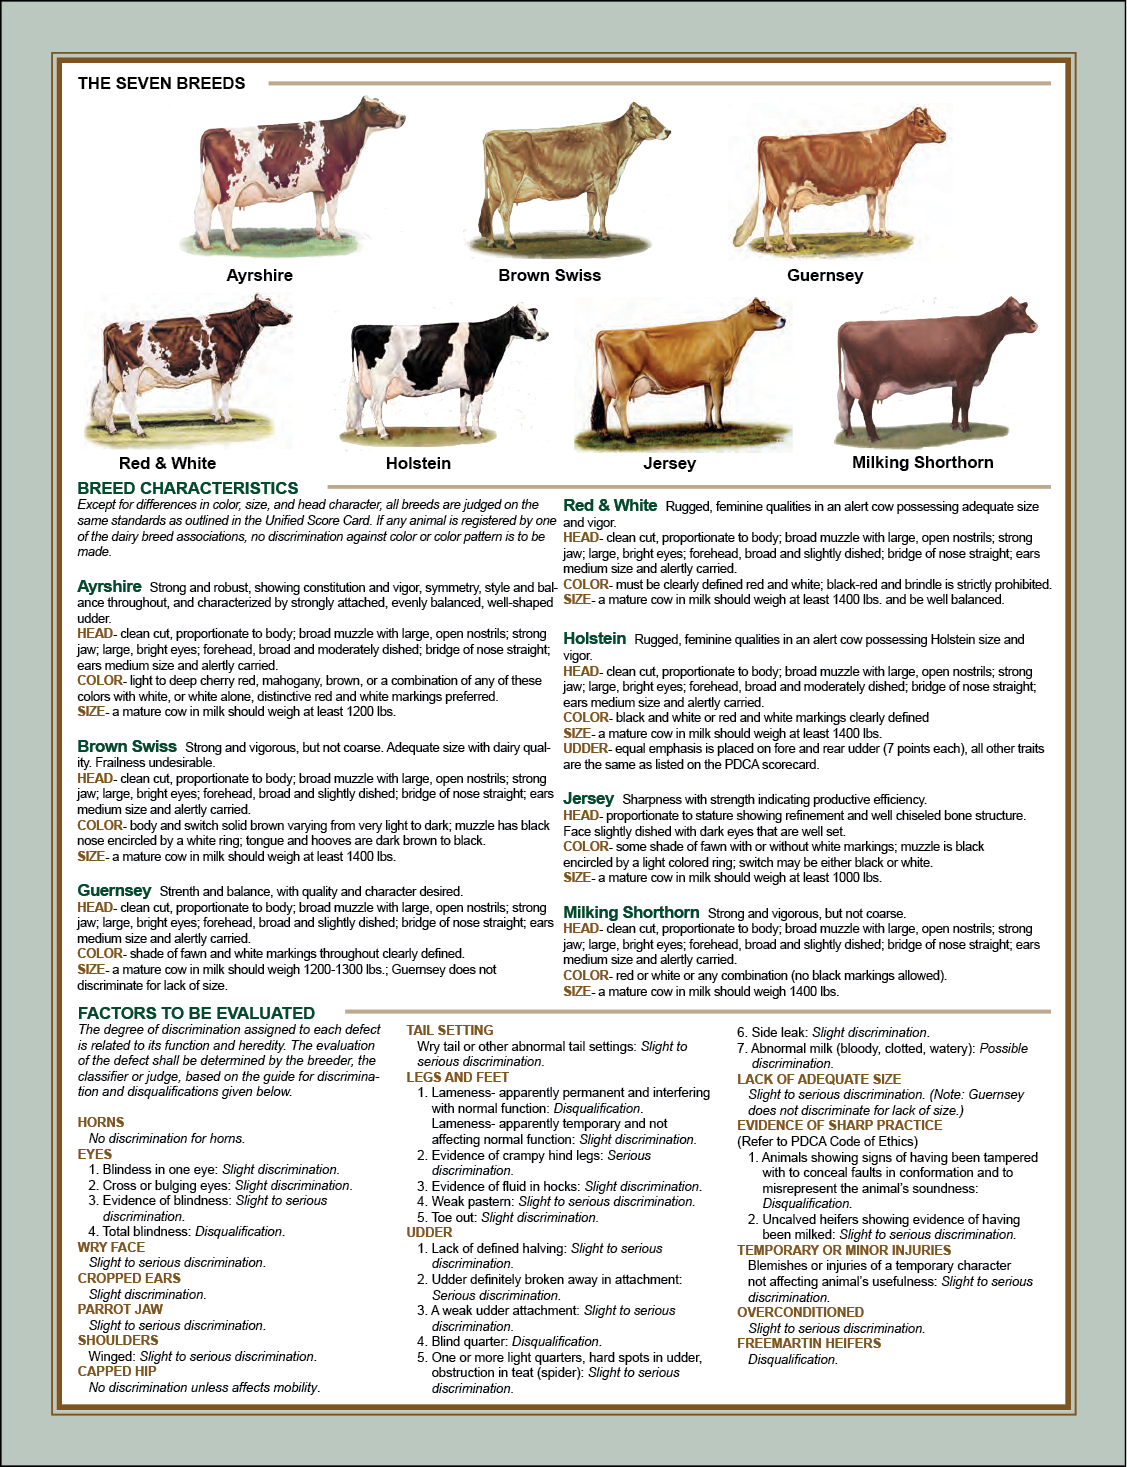 The seven breeds of cows are explained.